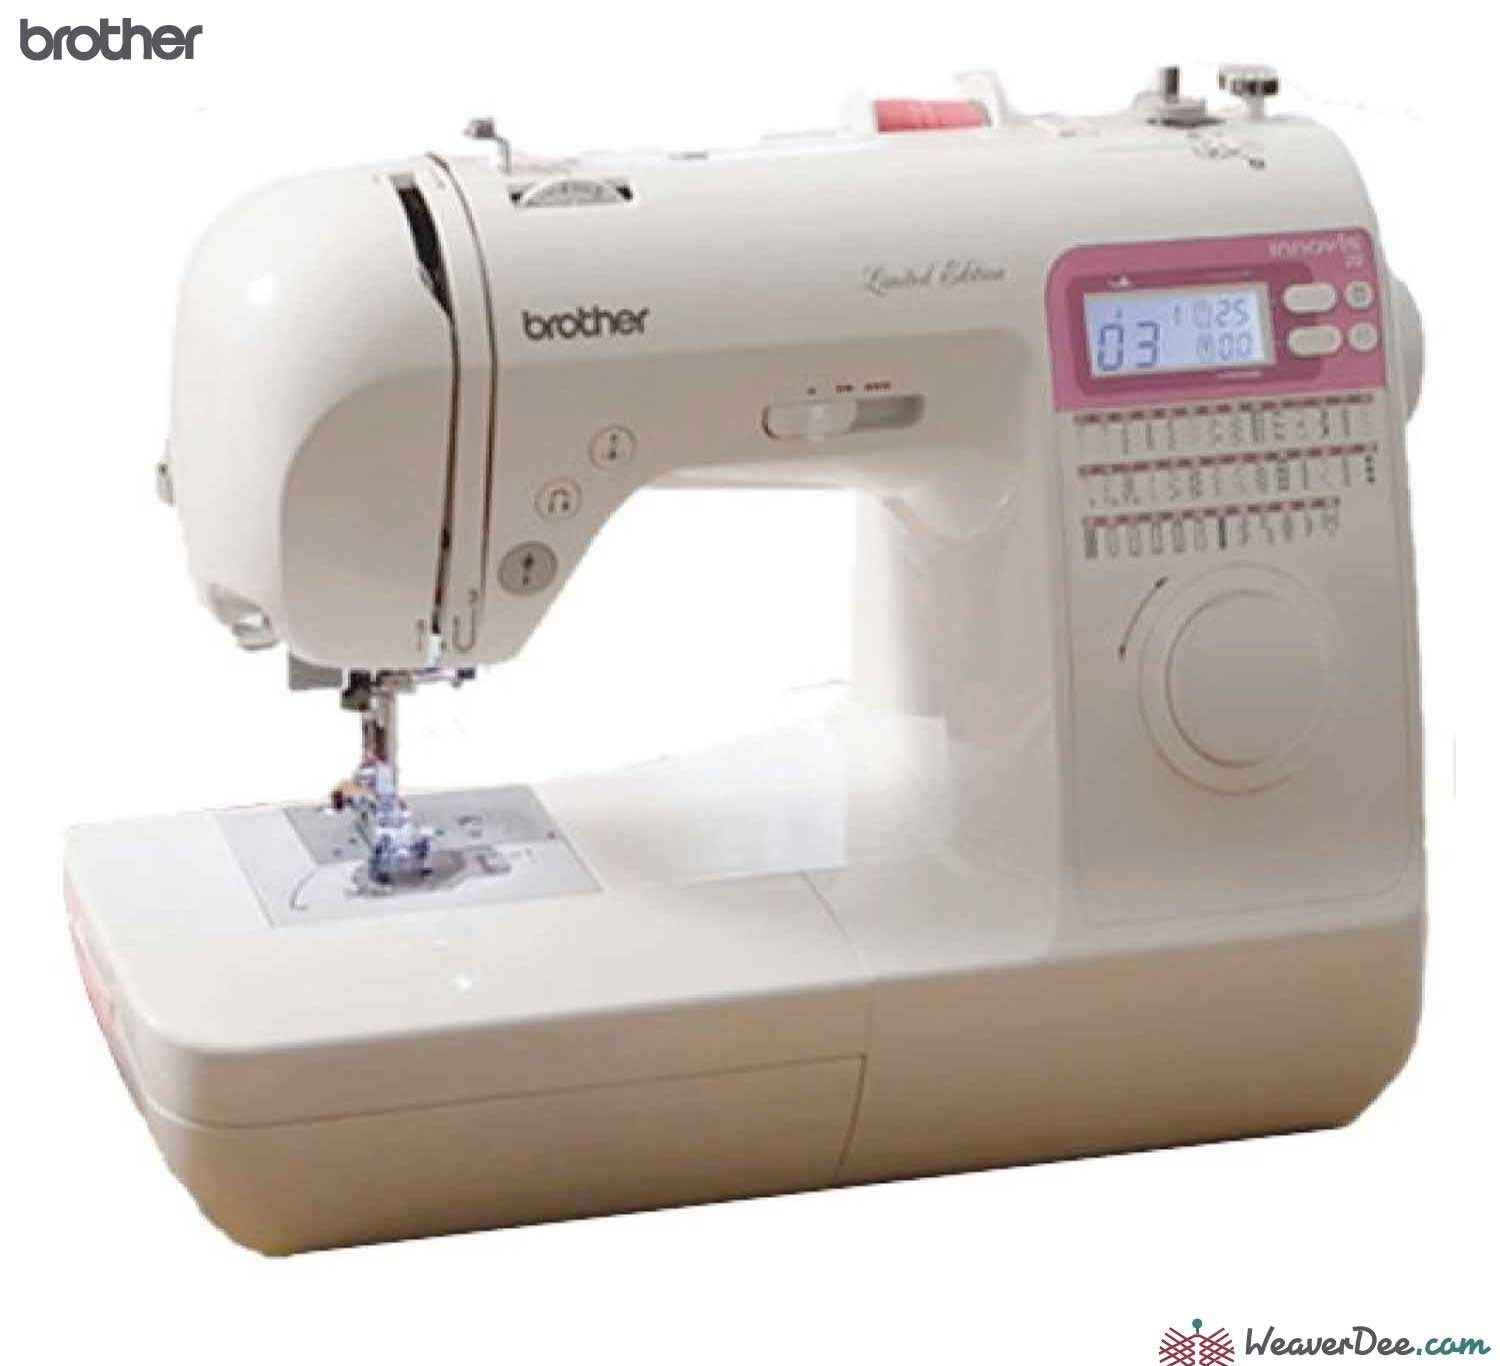 Brother - Brother innov-is 20LE Sewing Machine - WeaverDee.com Sewing & Crafts - 1